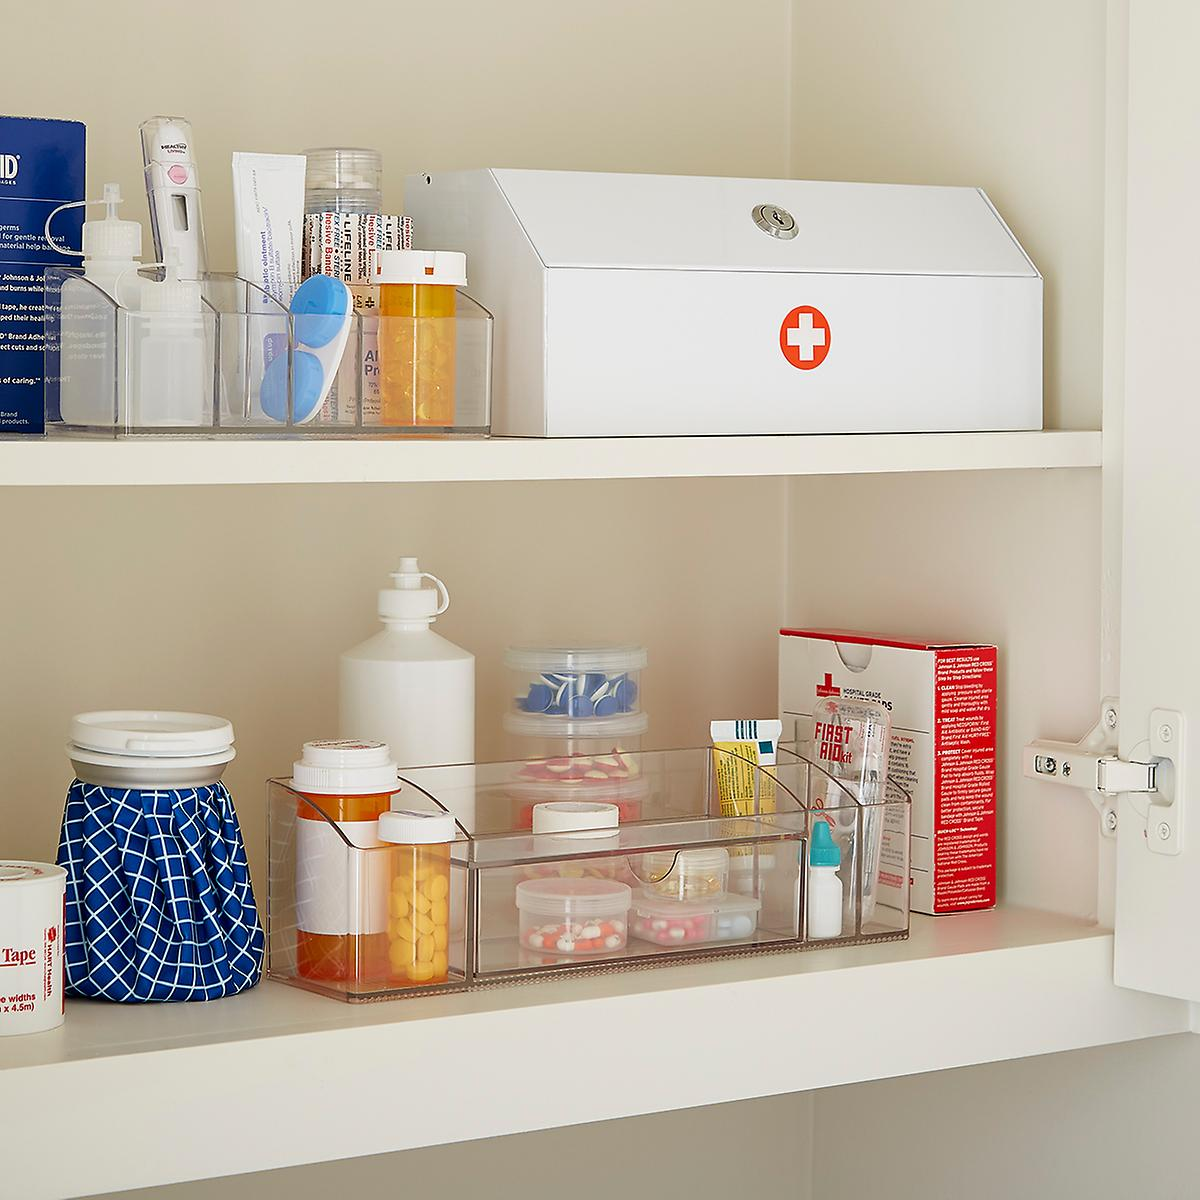 Prescription Security Cabinet The Container Store